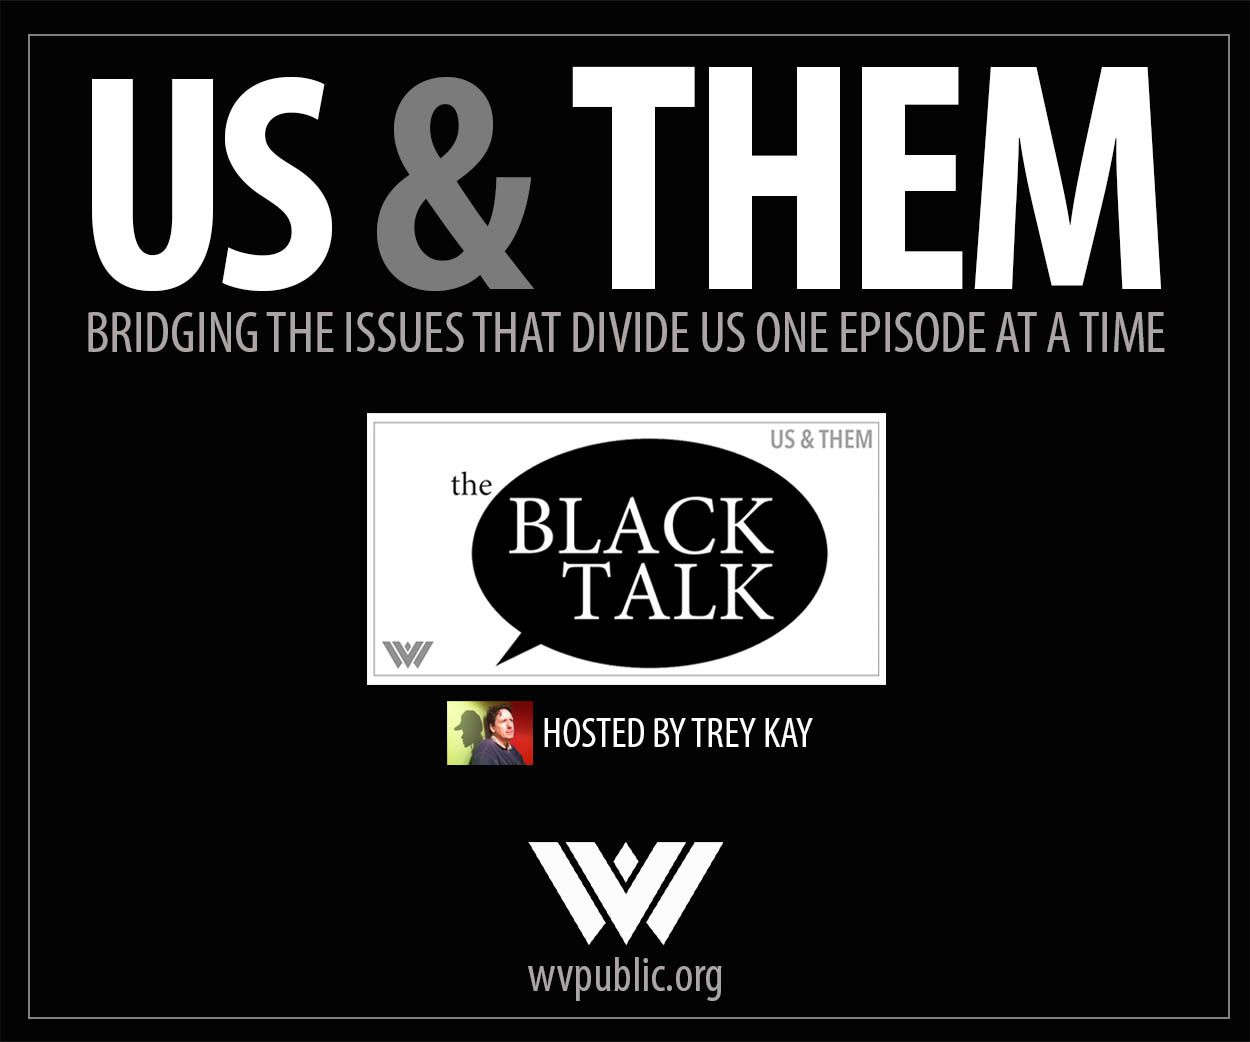 West Virginia Public Broadcasting advertisement for Us & Them podcast